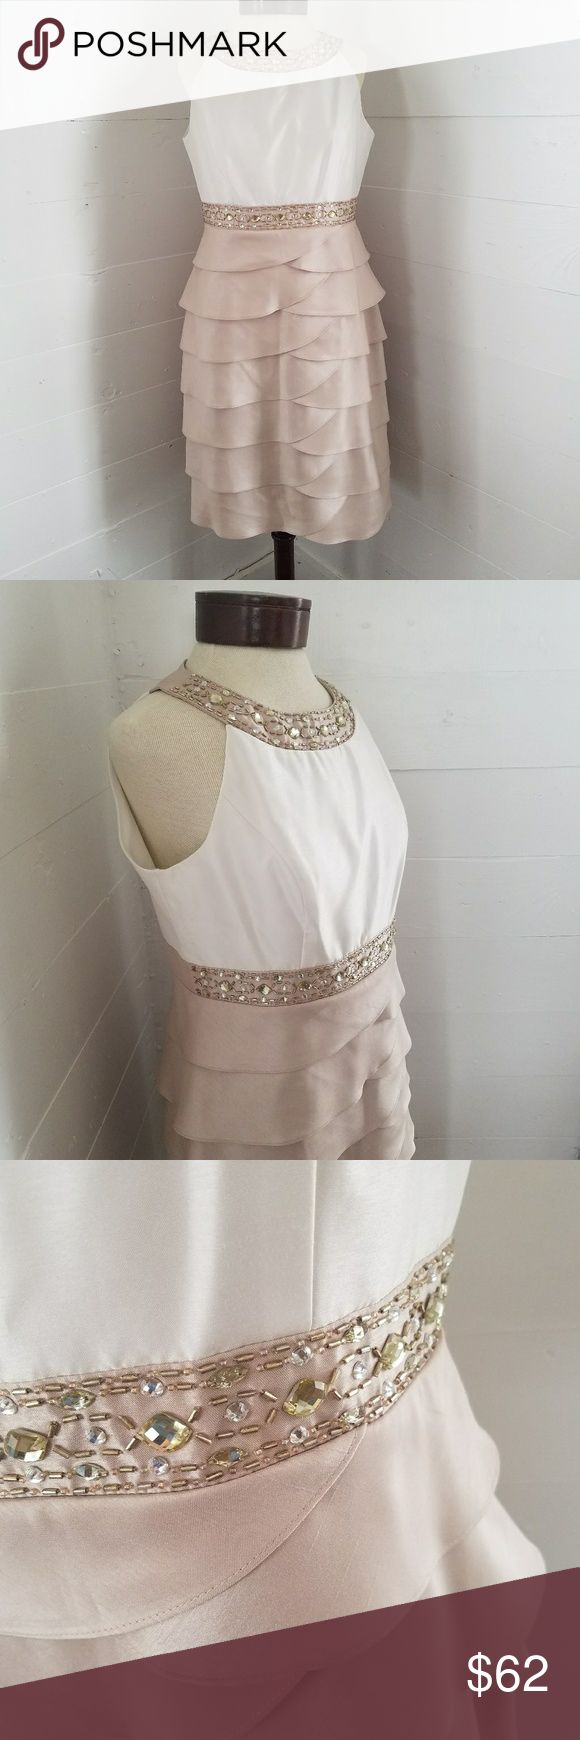 """NWT Jessica Howard Petite Evening Dress Jessica Howard Petite Dress. NWT. This shutter pleat dress is so beautiful for your next special occasion. Thw color is a shimmery ivory/beige embellish with beautiful beading and rhinestones. Lined. Very Flattering dress! Appox. Measurement: Length 36"""" Waist 16"""" Armpit to Armpit 18"""".  *M8 Jessica Howard Dresses"""